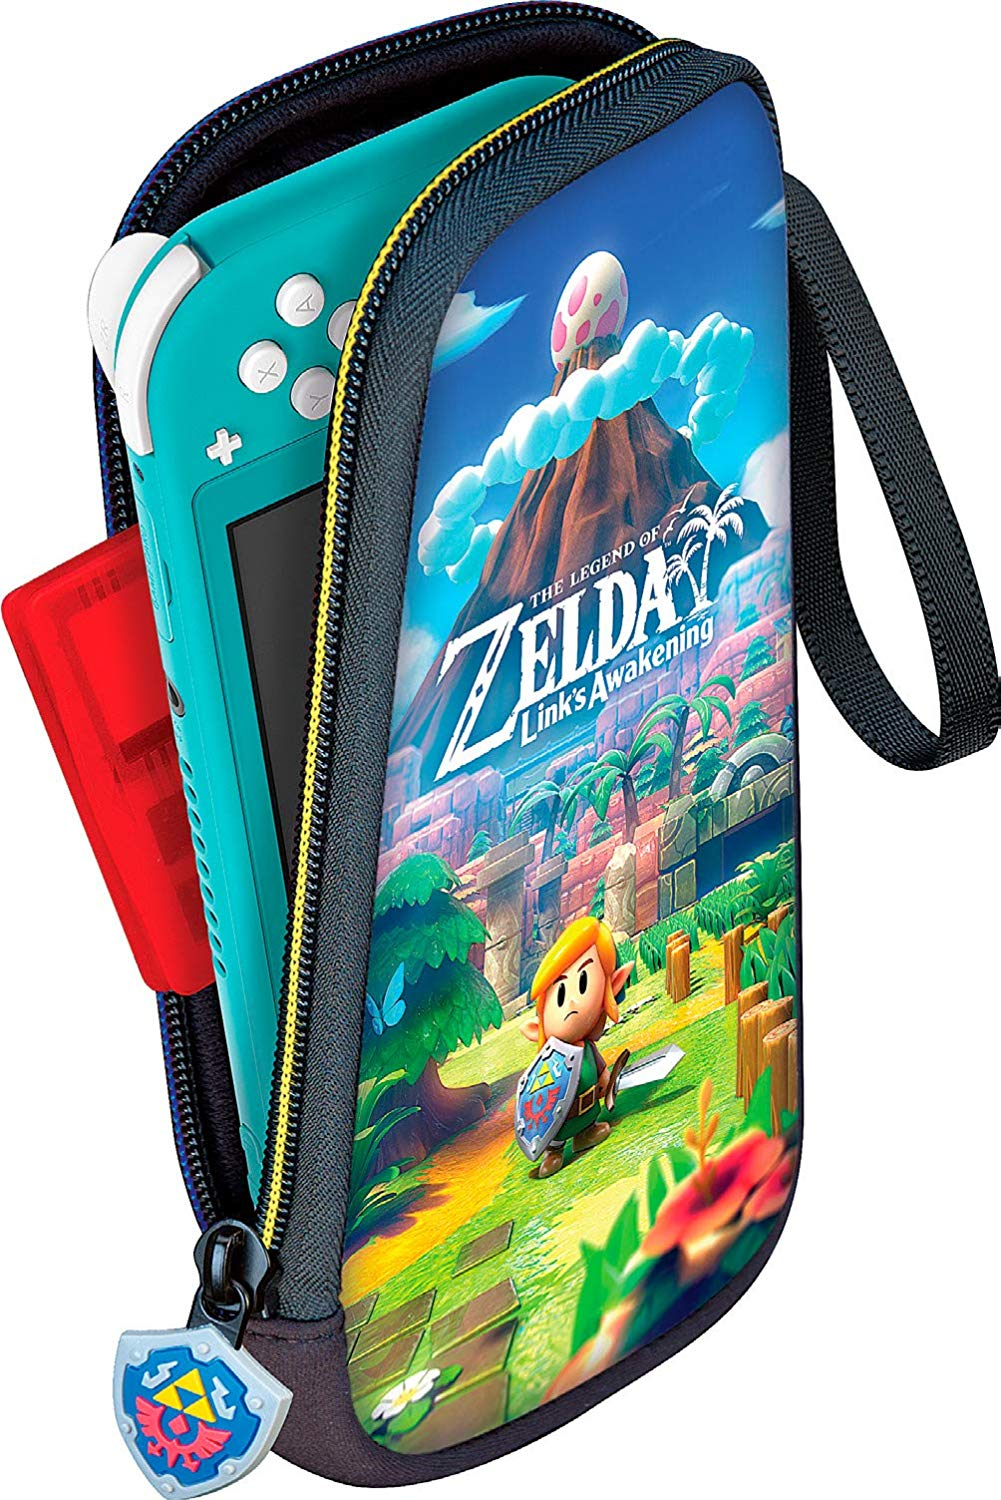 The Legend of Zelda Link's Awakening Travel Case for Nintendo Switch Lite